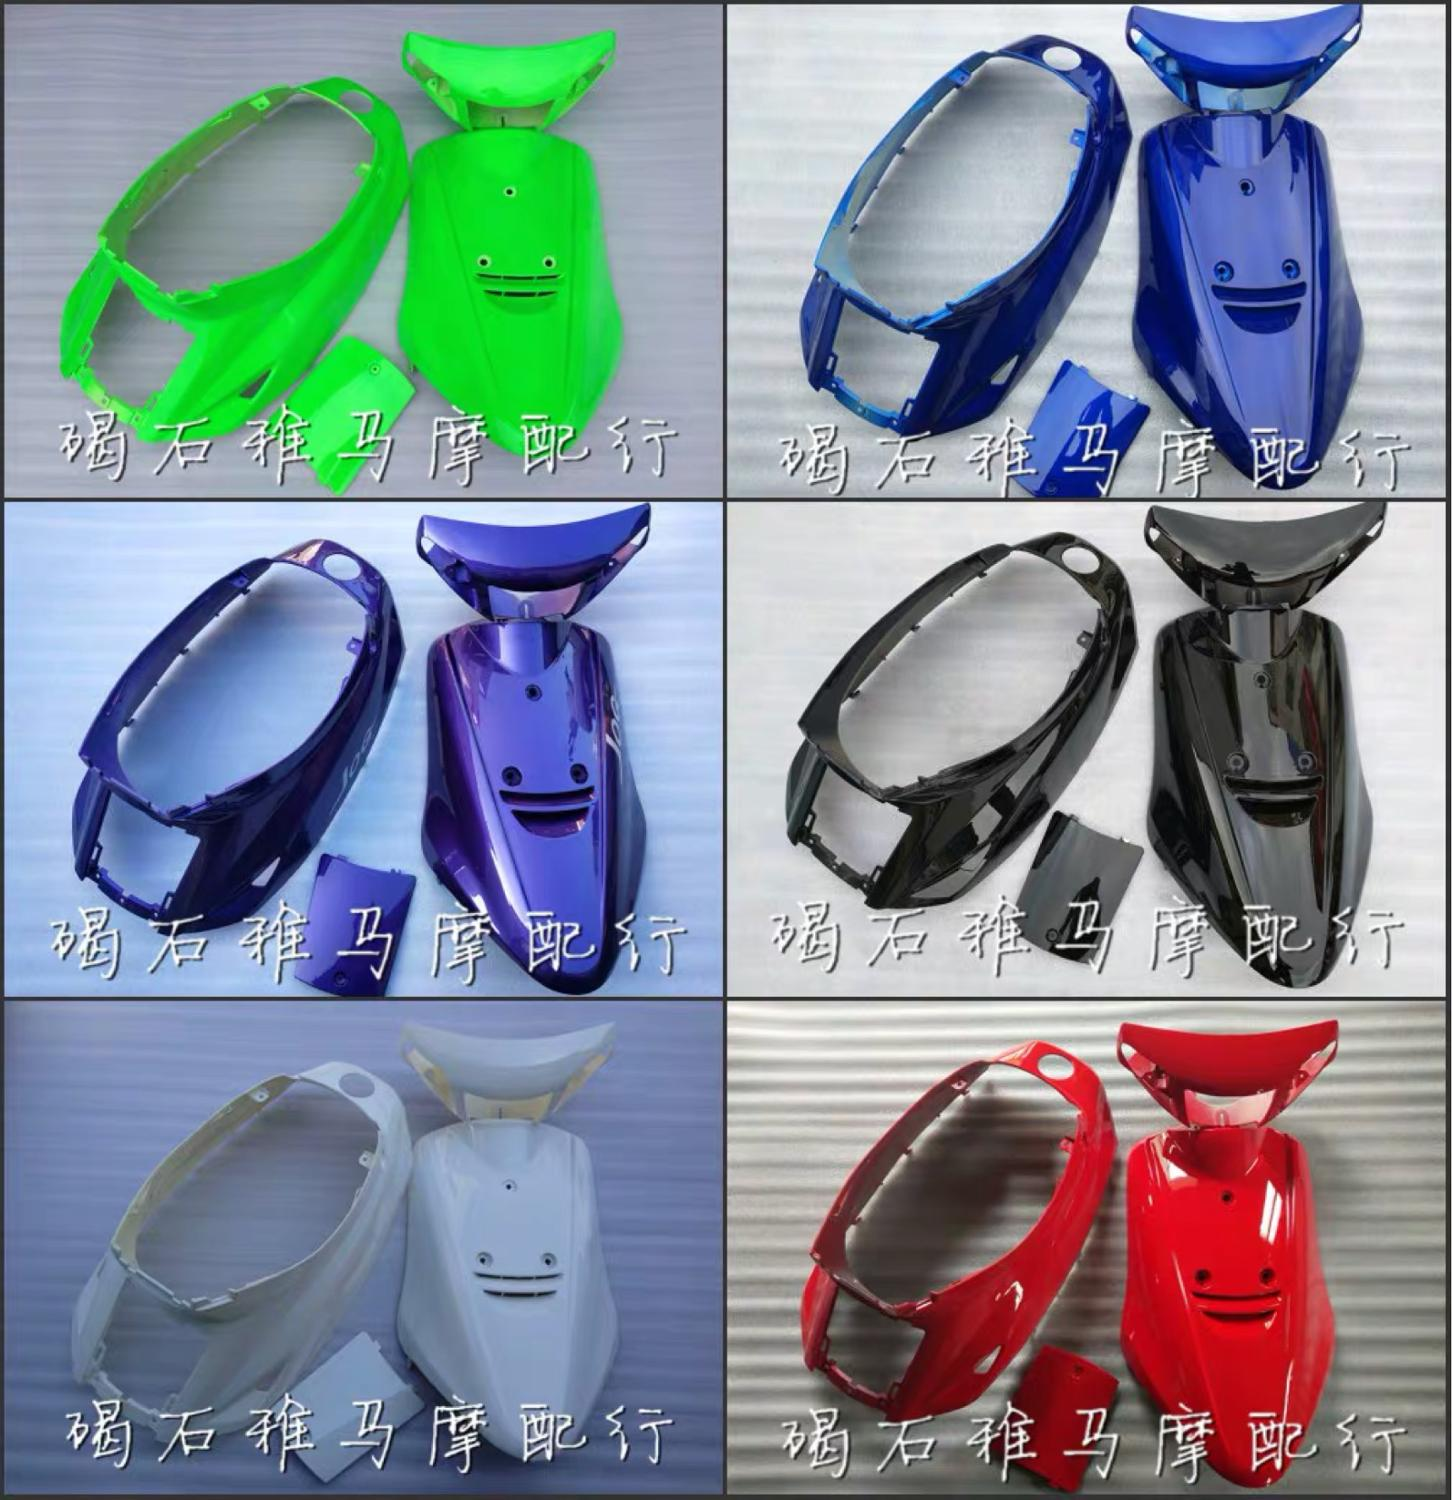 Body Kit For JOG50 3KJ 50cc Full Fairing Kit Inner Outer Scooter Fitting Jog 50